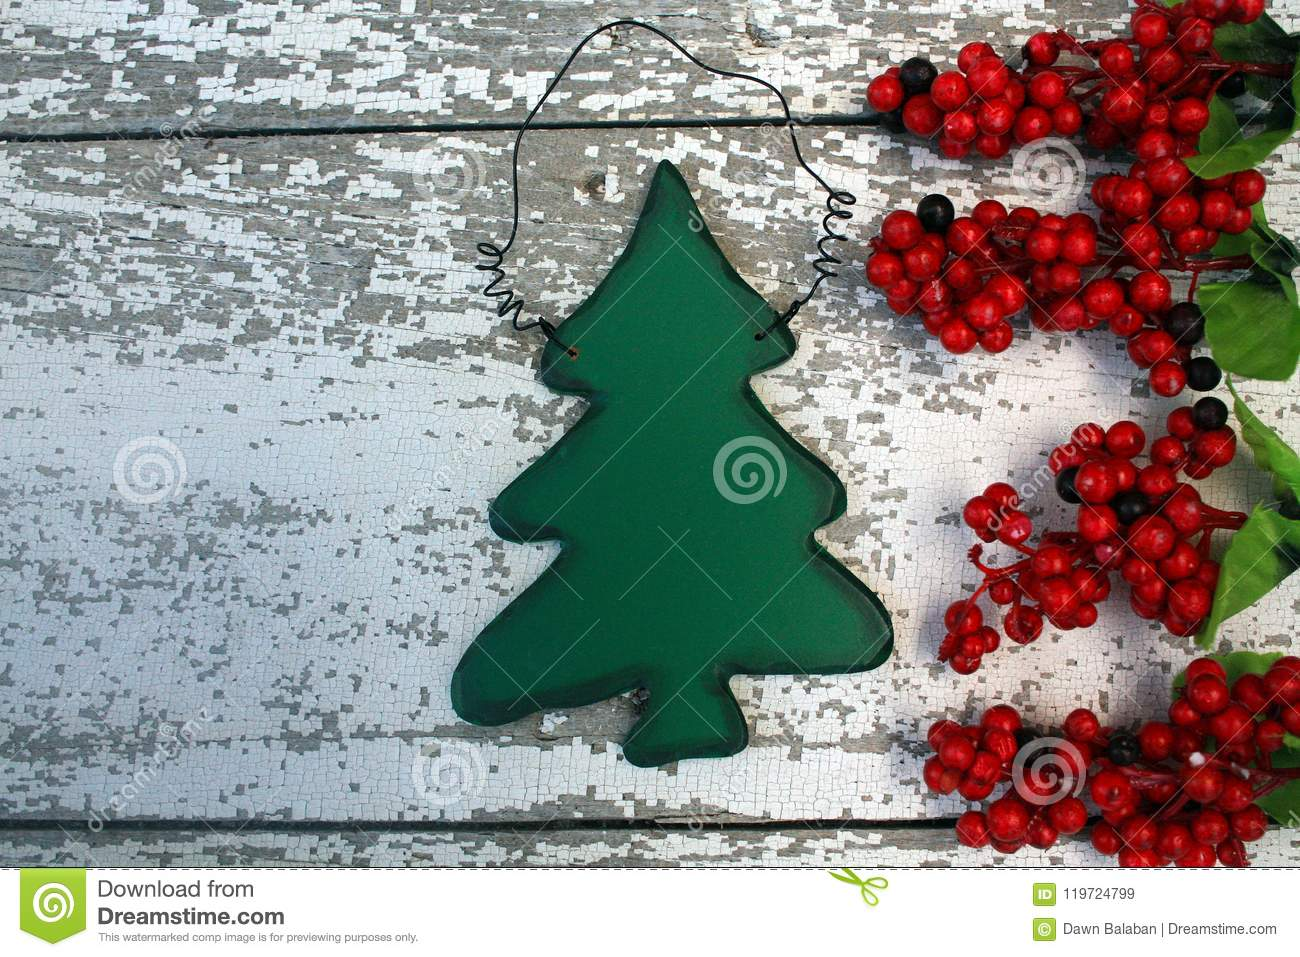 christmas tree decoration on white background with red berries